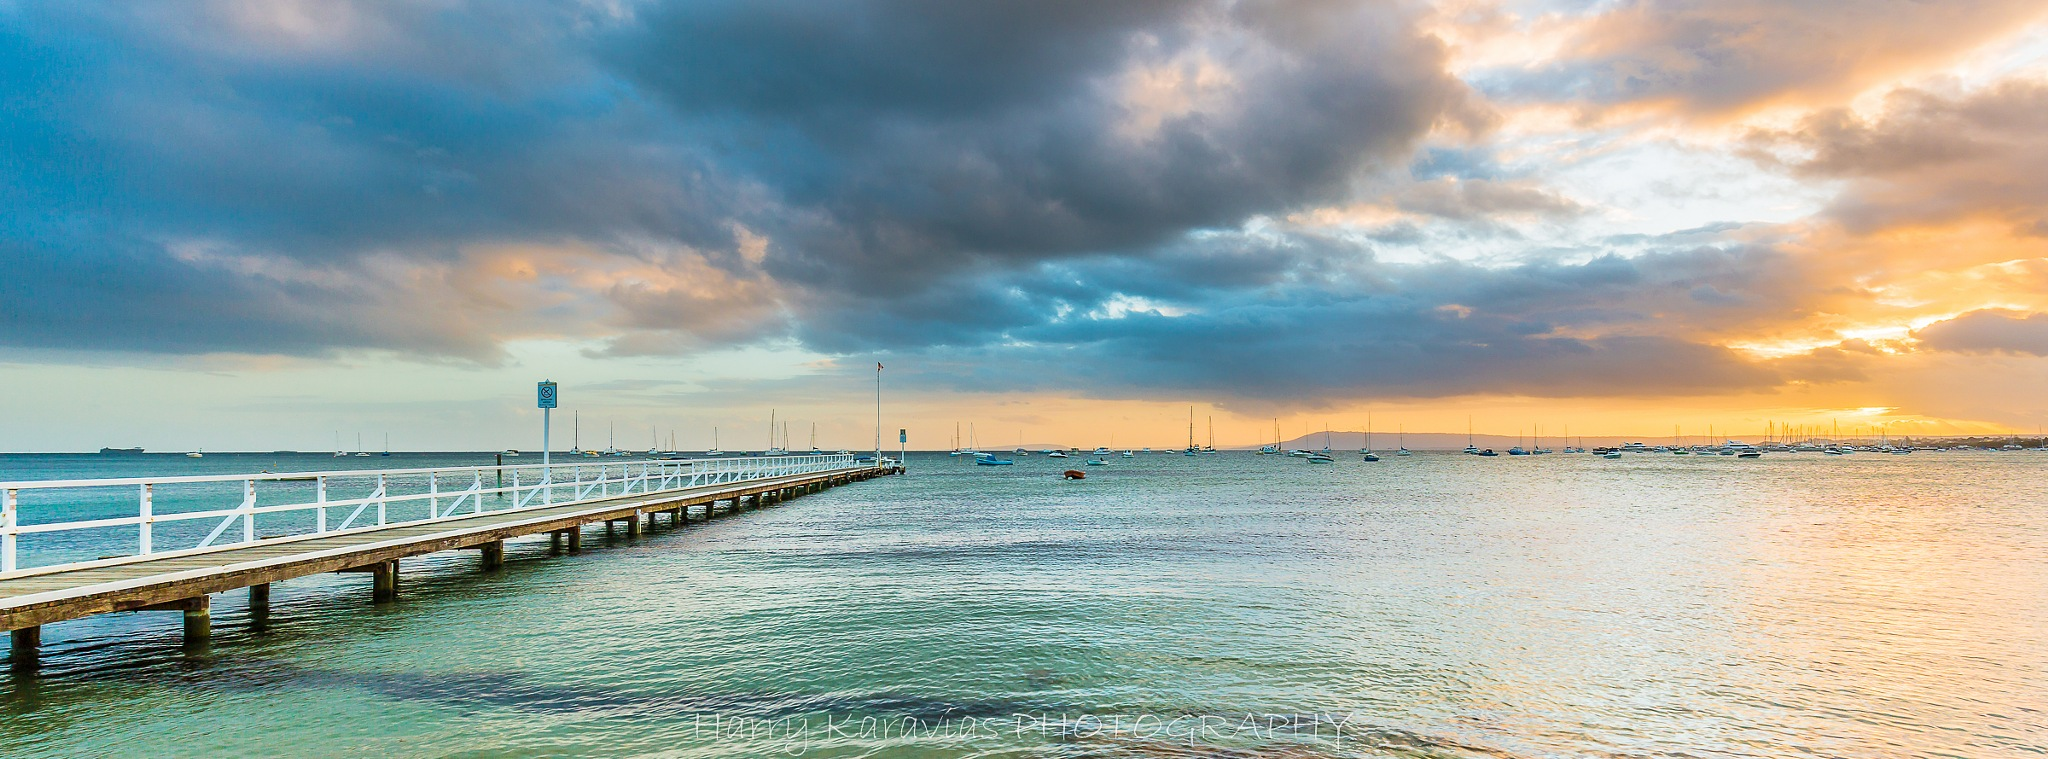 People's Jetty Sorrento Vic by Harry Karavias